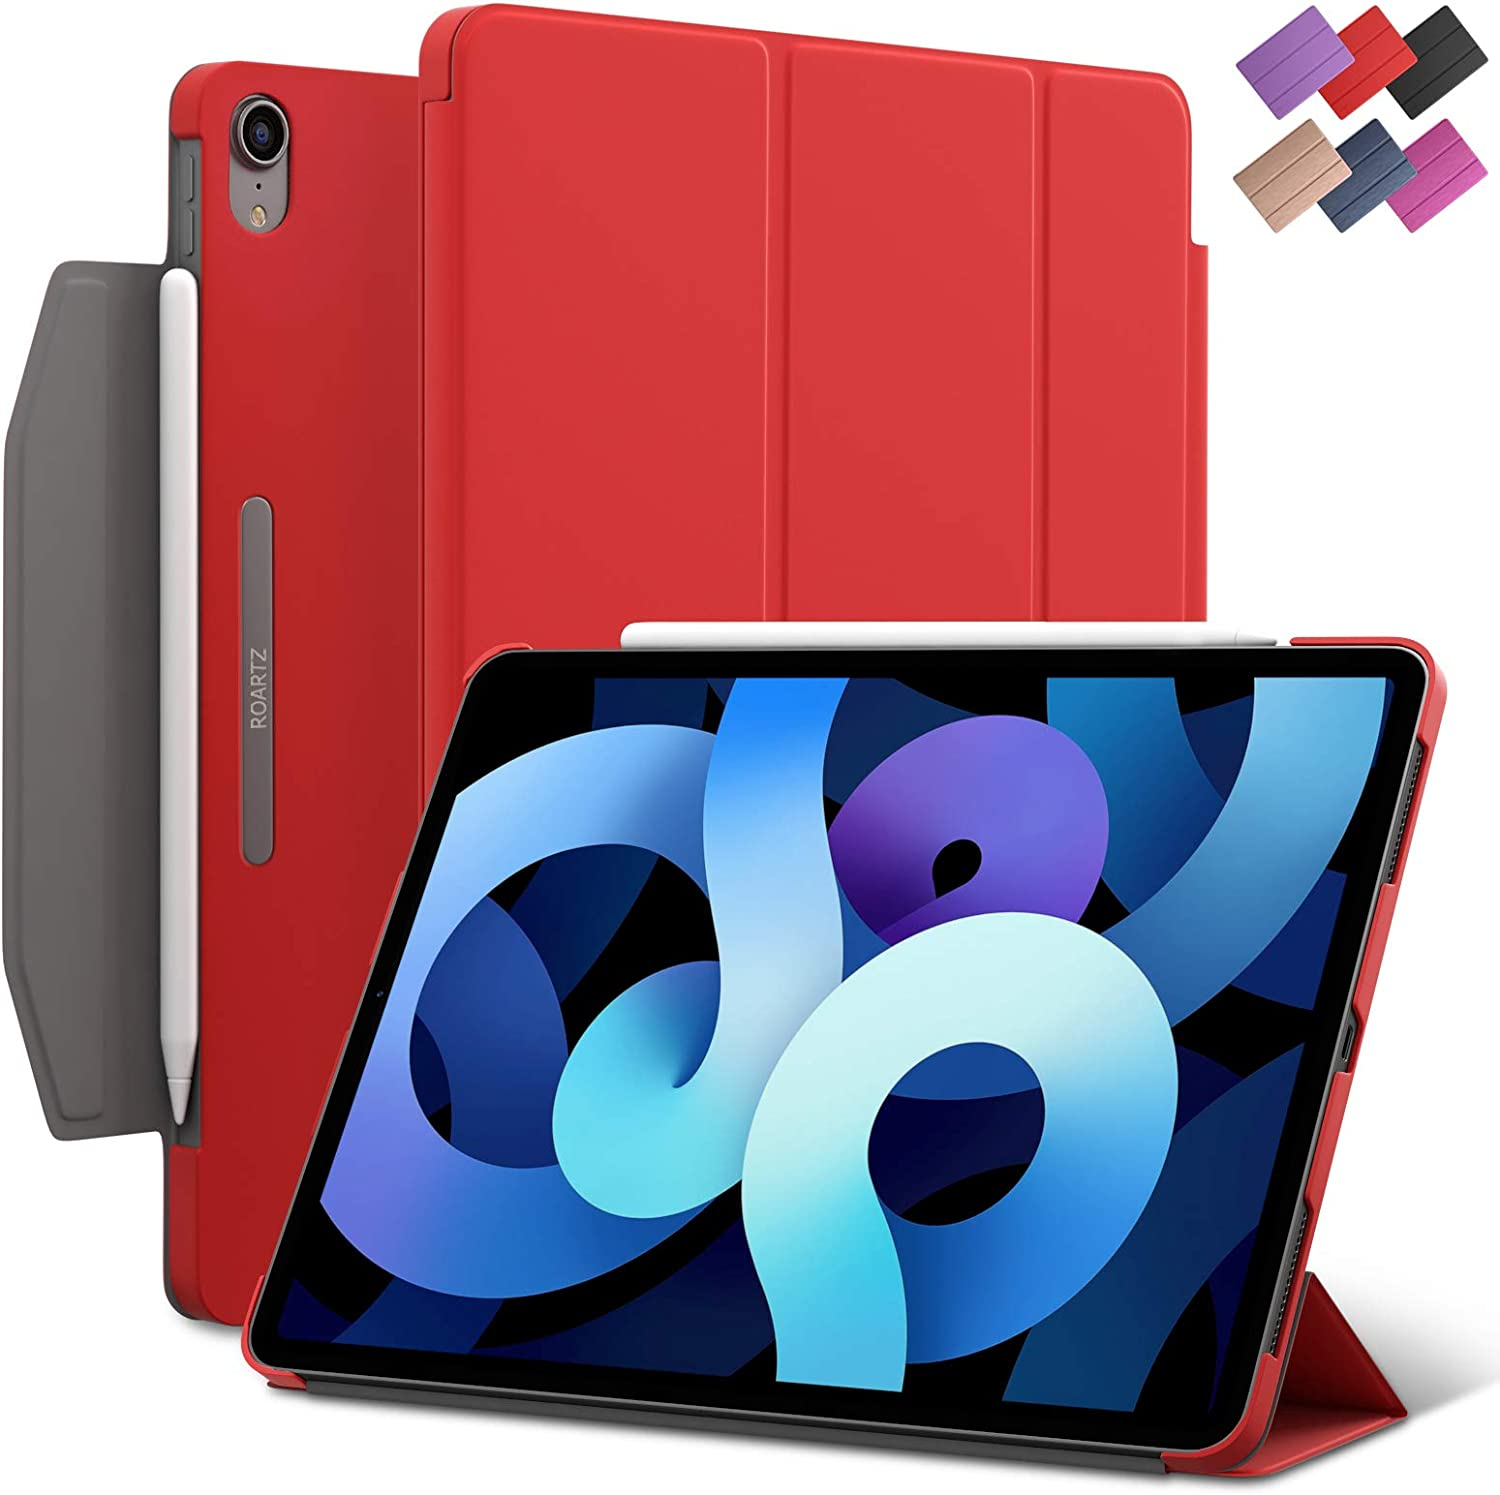 iPad Air 4 10.9-inch case, ROARTZ Red Slim Fit Smart Rubber Coated Folio Case Hard Cover Light-Weight Wake/Sleep Pencil Holder for Apple iPad Air 4th Generation 2020 Lastest Model